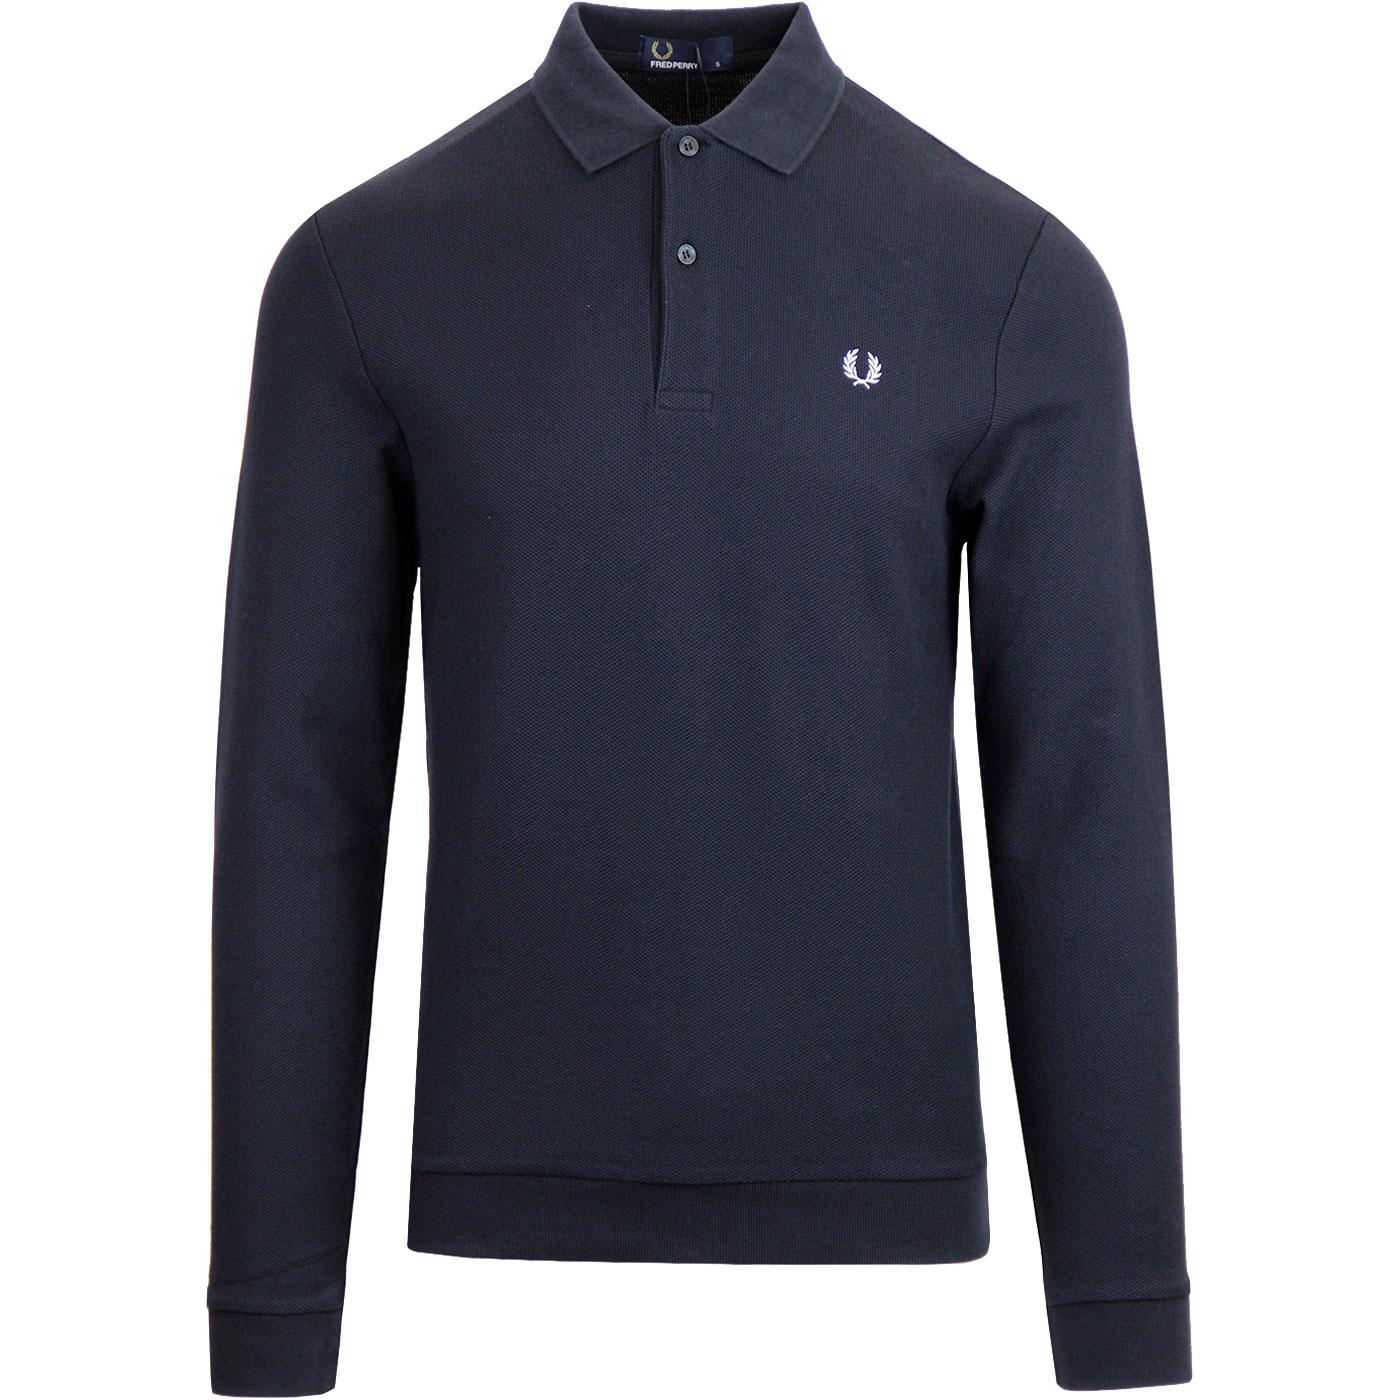 FRED PERRY Retro Honeycomb Pique Mod LS Polo NAVY